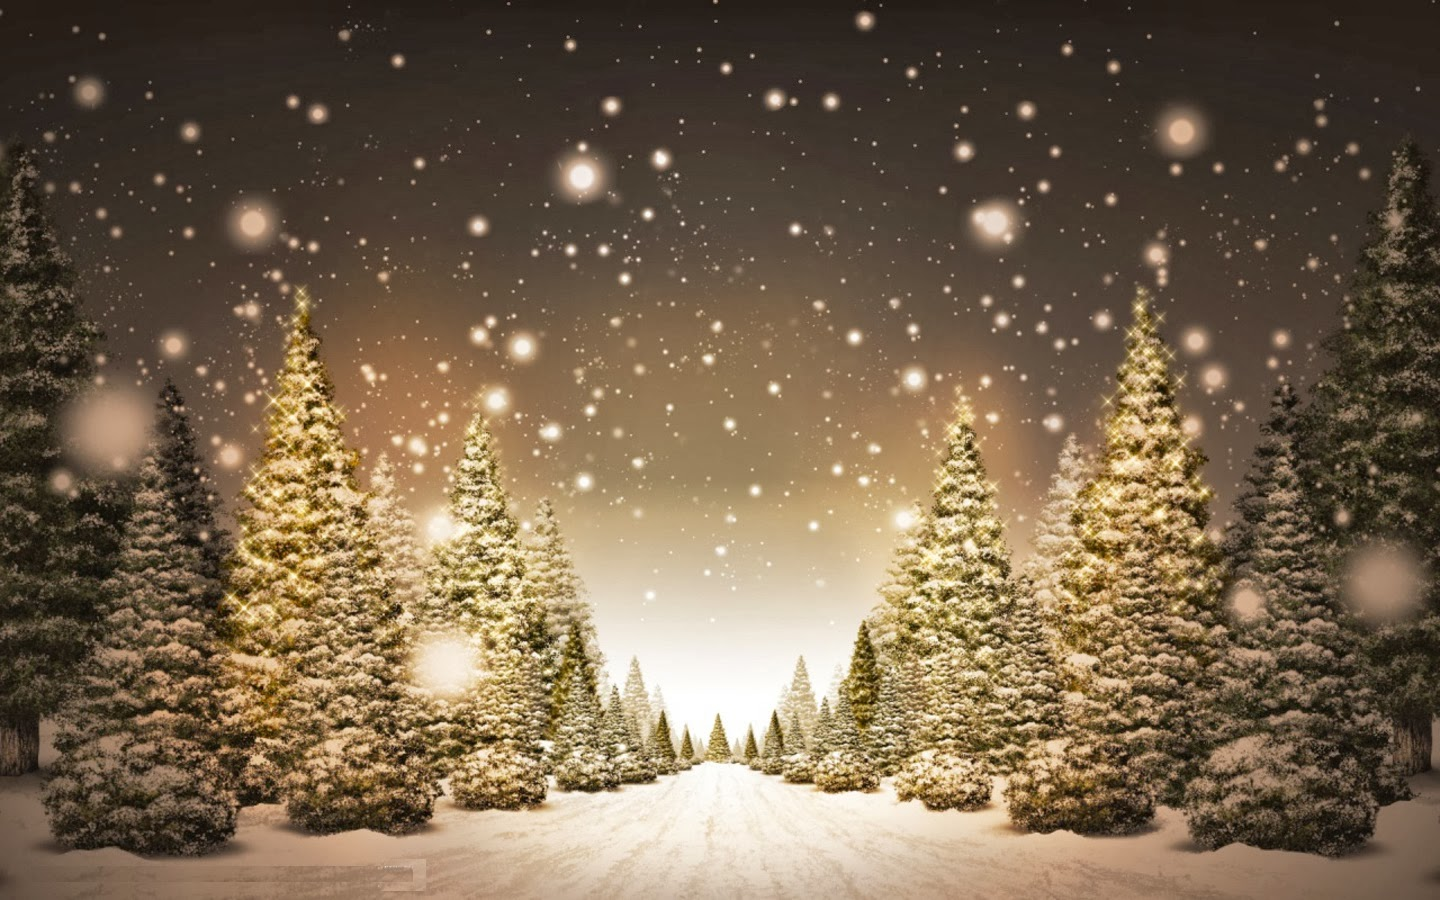 40 super cool christmas screensavers all about christmas